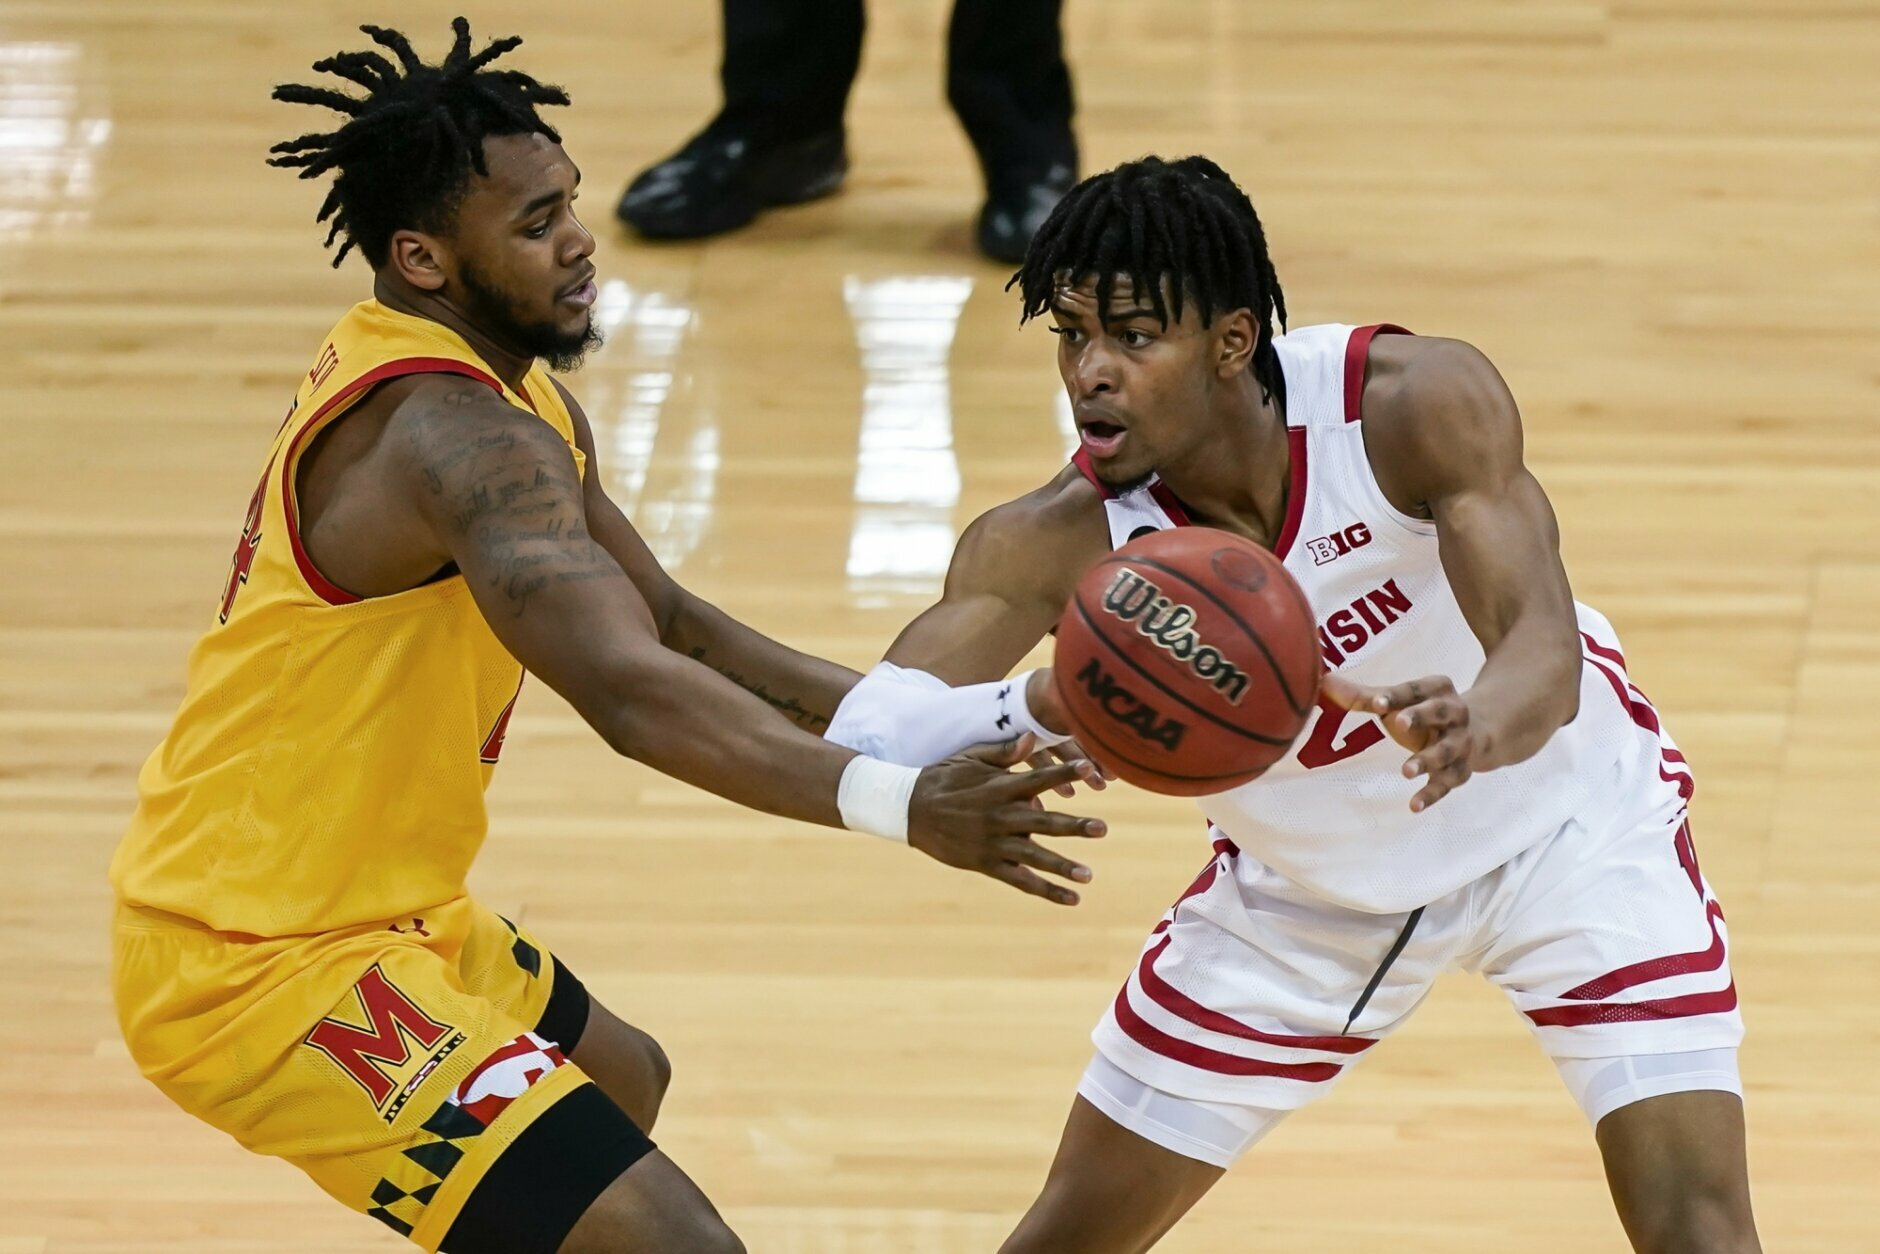 Wisconsin's Aleem Ford (2) passes the ball as Maryland's Donta Scott defends during the first half of an NCAA college basketball game Tuesday, Jan. 14, 2020, in Madison, Wis. (AP Photo/Andy Manis)